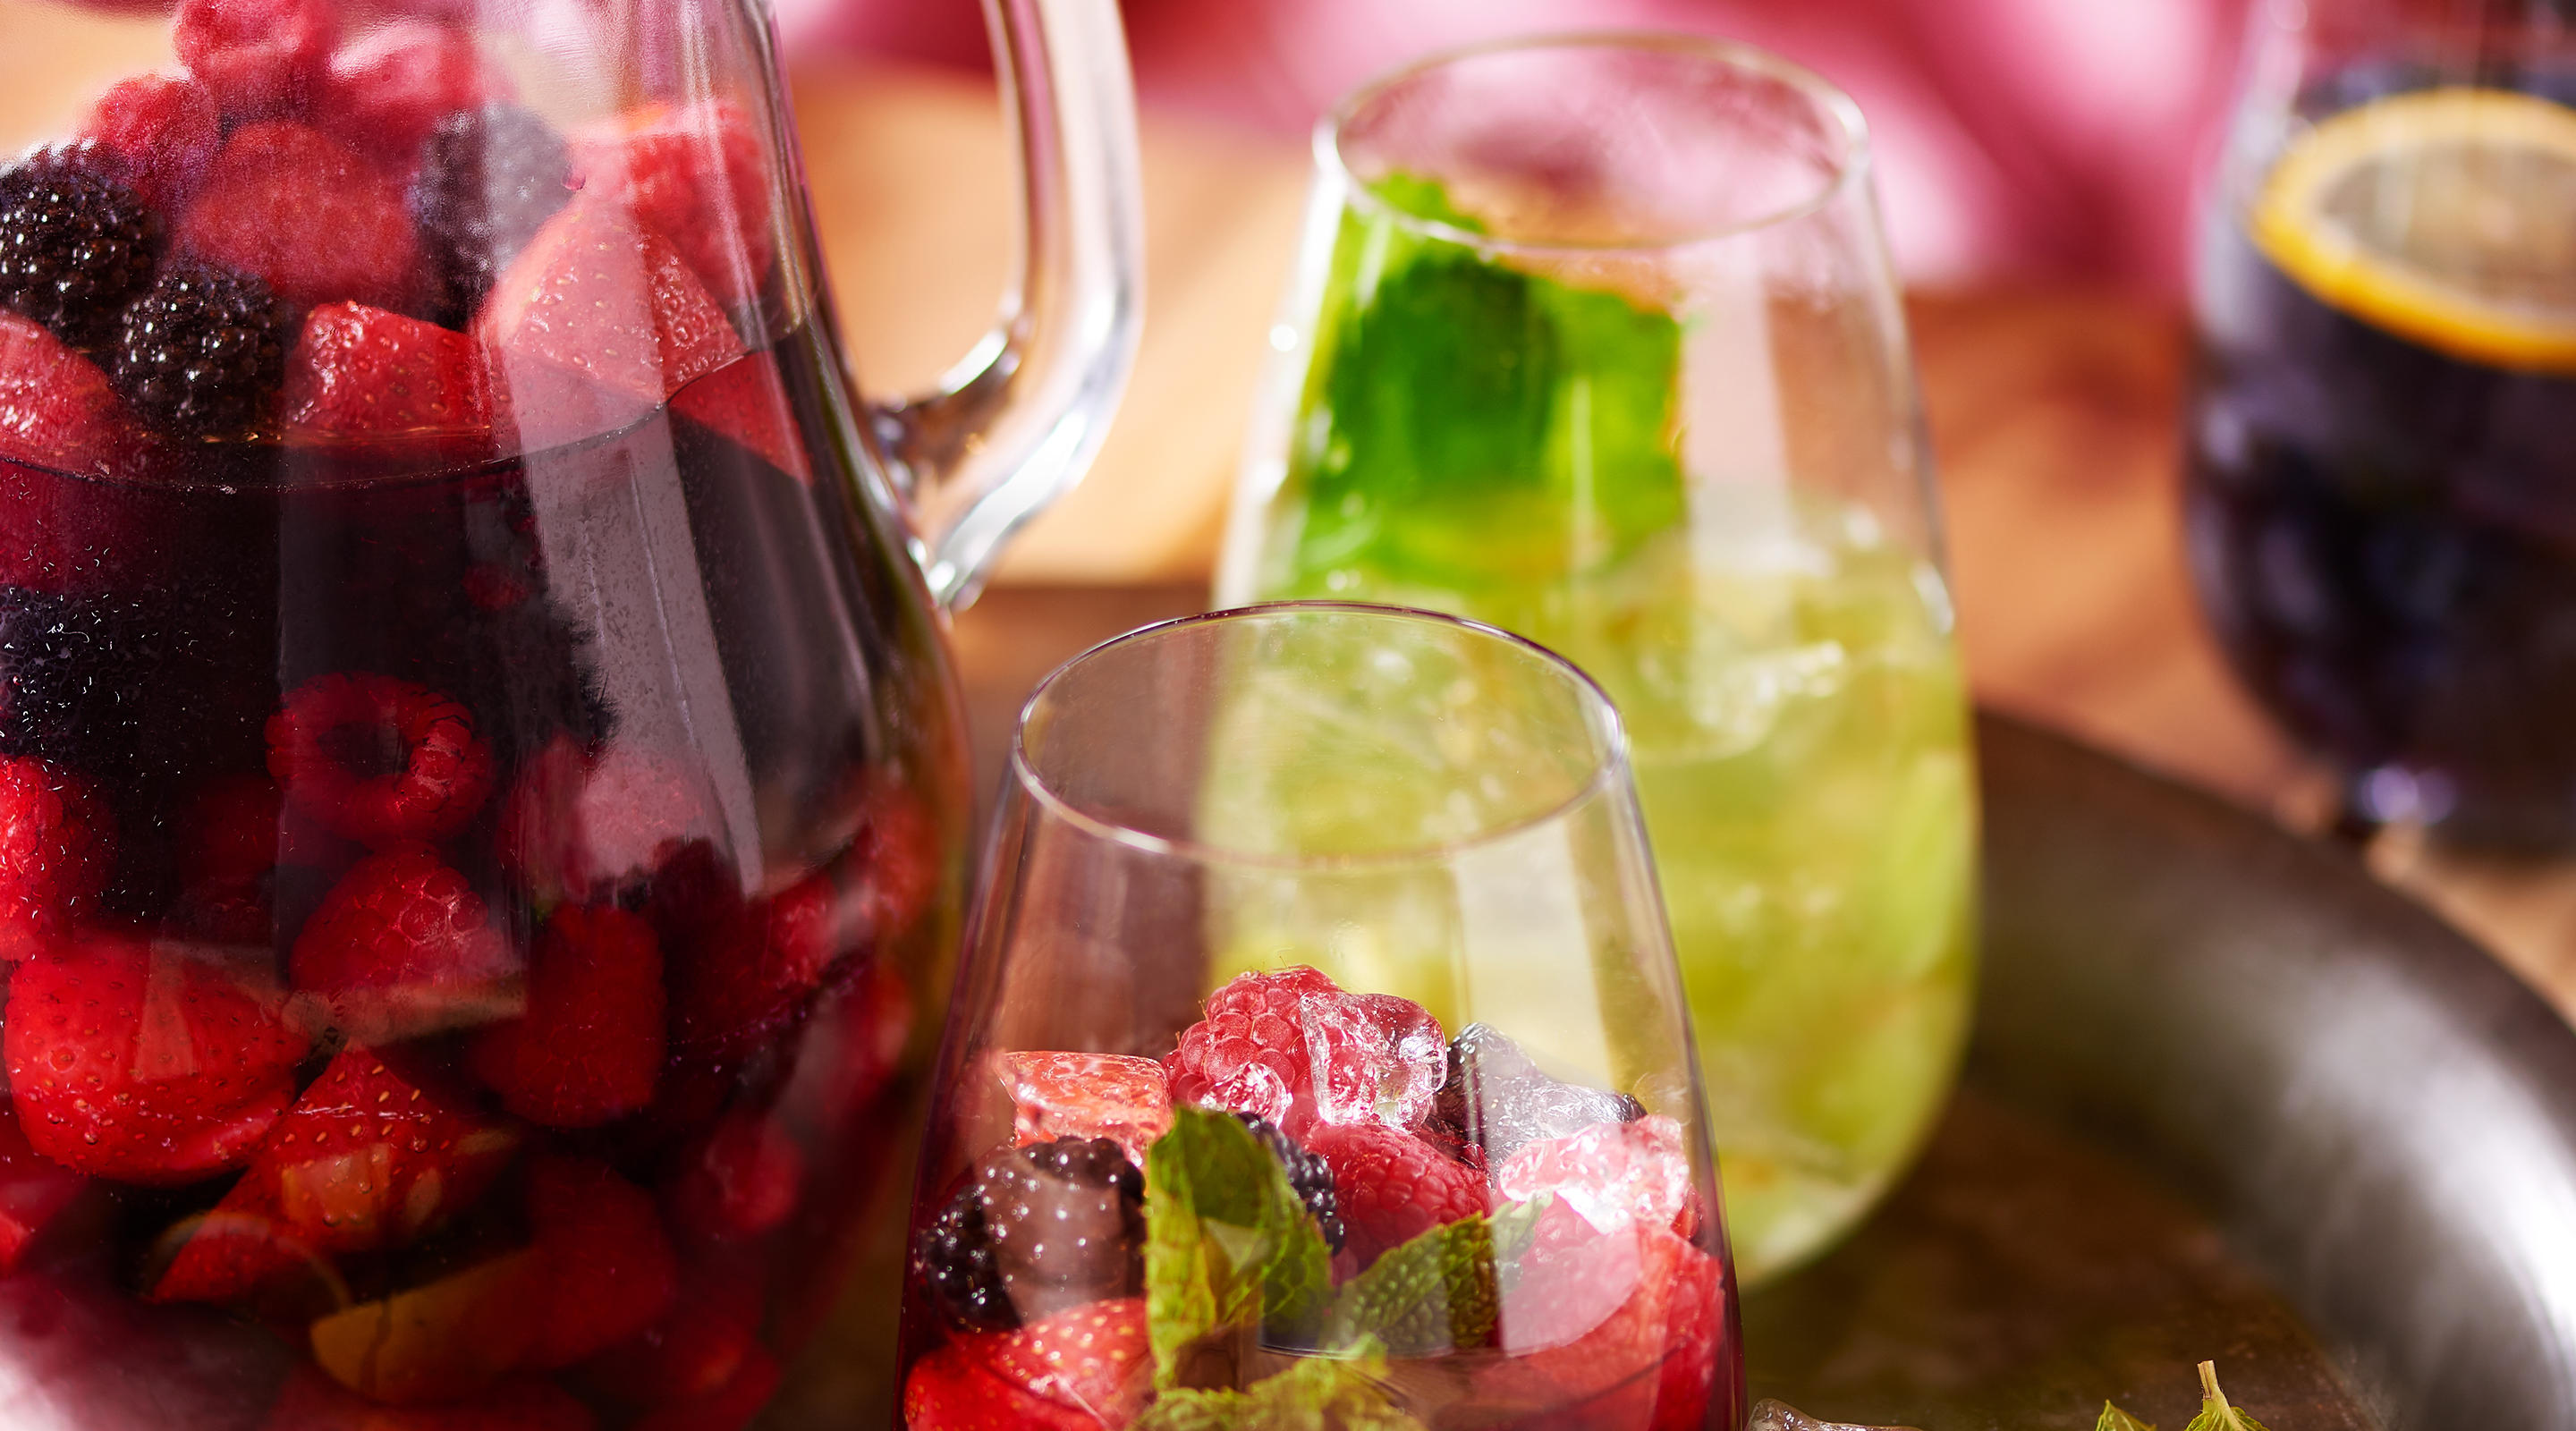 Housemade sangria is the perfect complement to your dining experience at Julian Serrano Tapas.